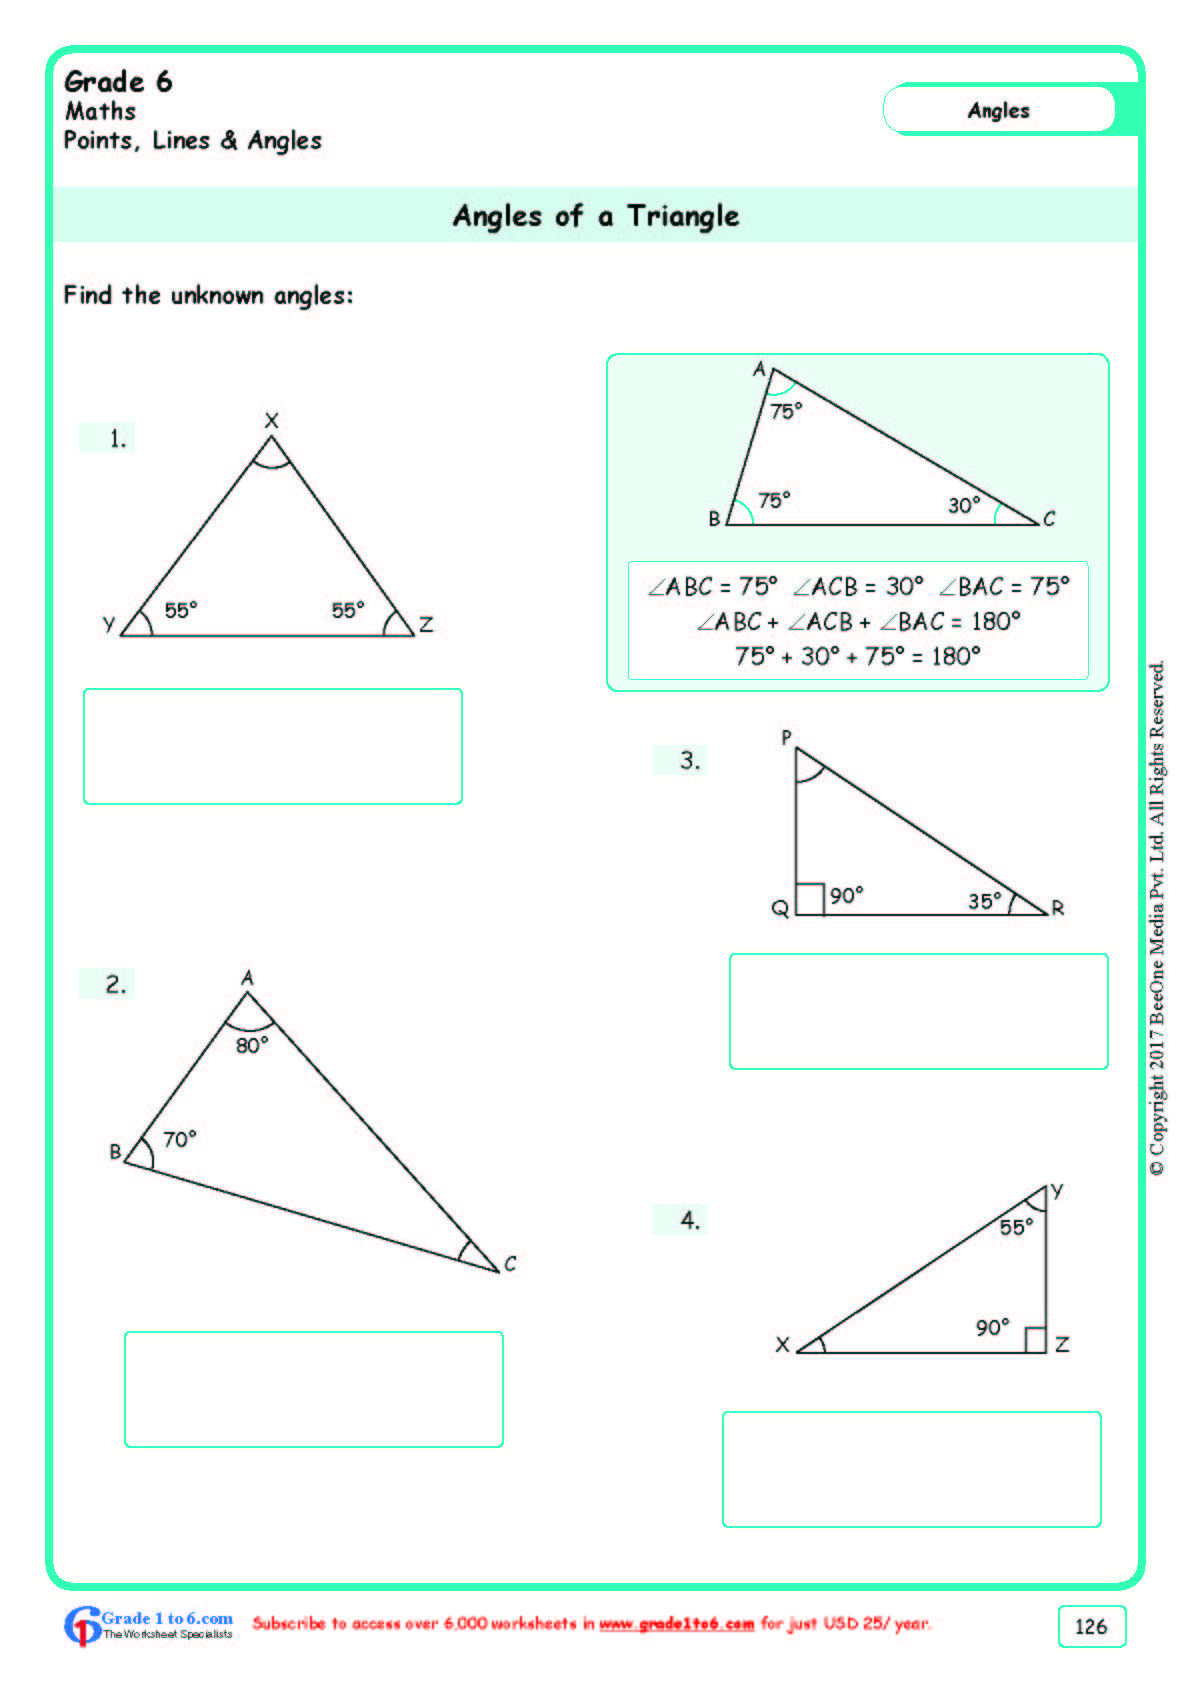 Grade 6 Class Six Angles Of A Triangle Worksheets